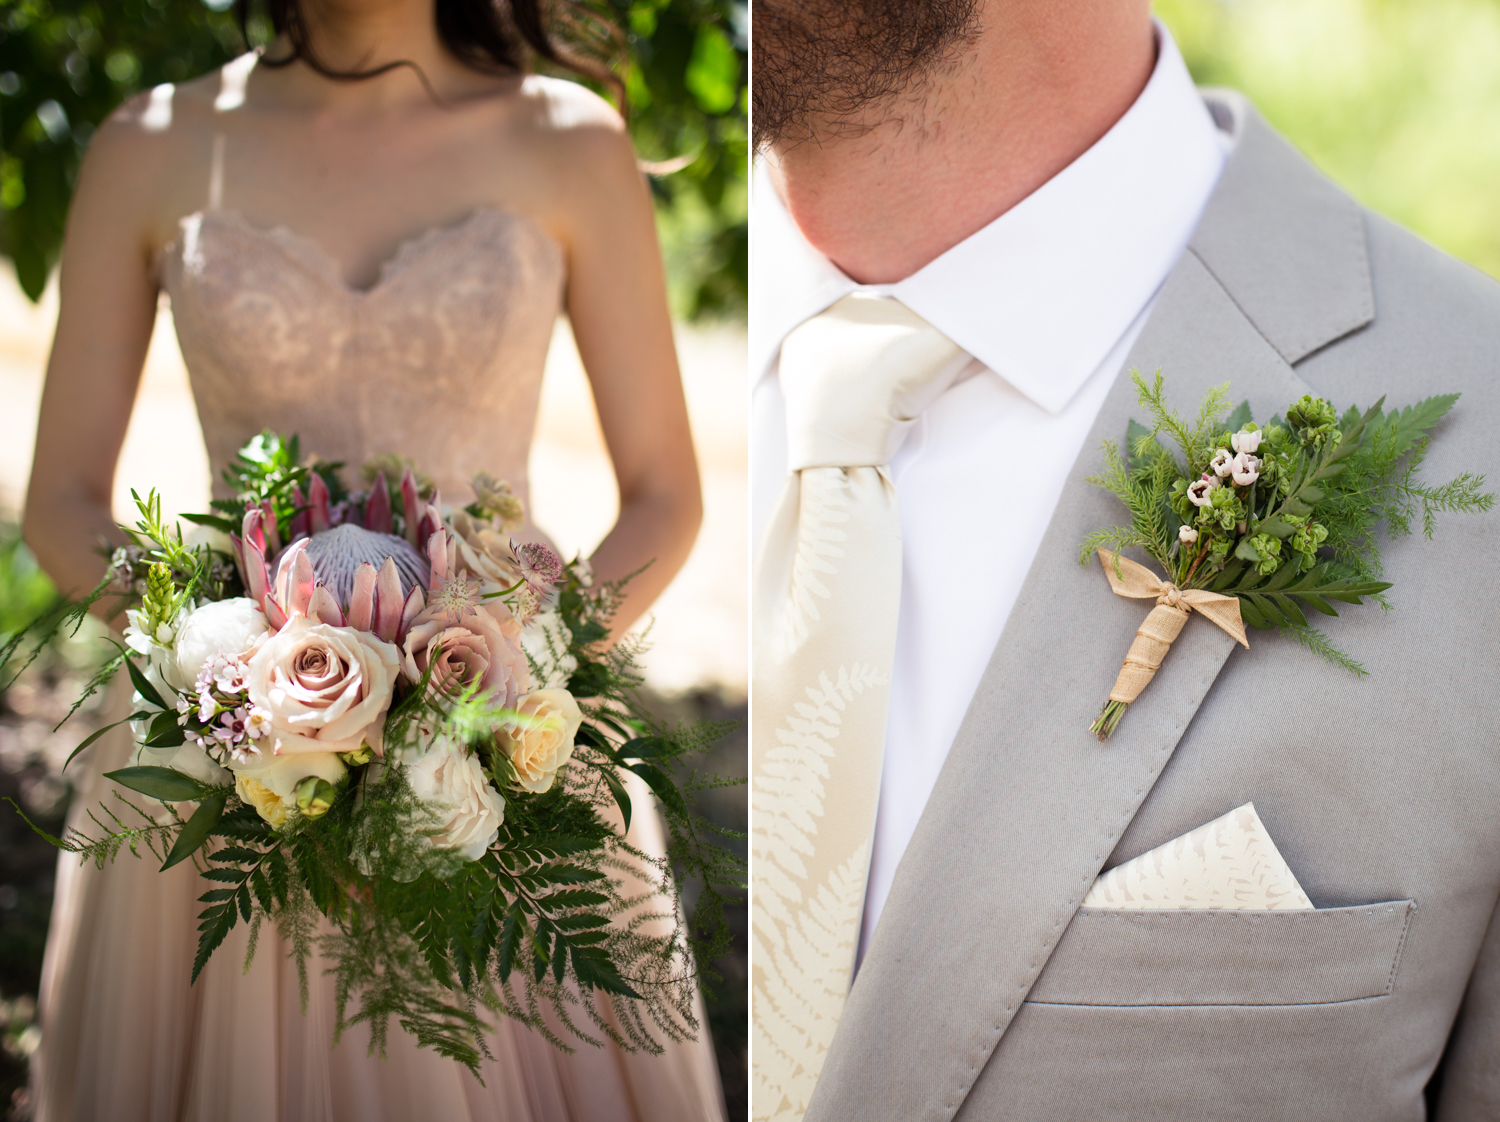 lily and mint floral mendocino county wedding photograpahy